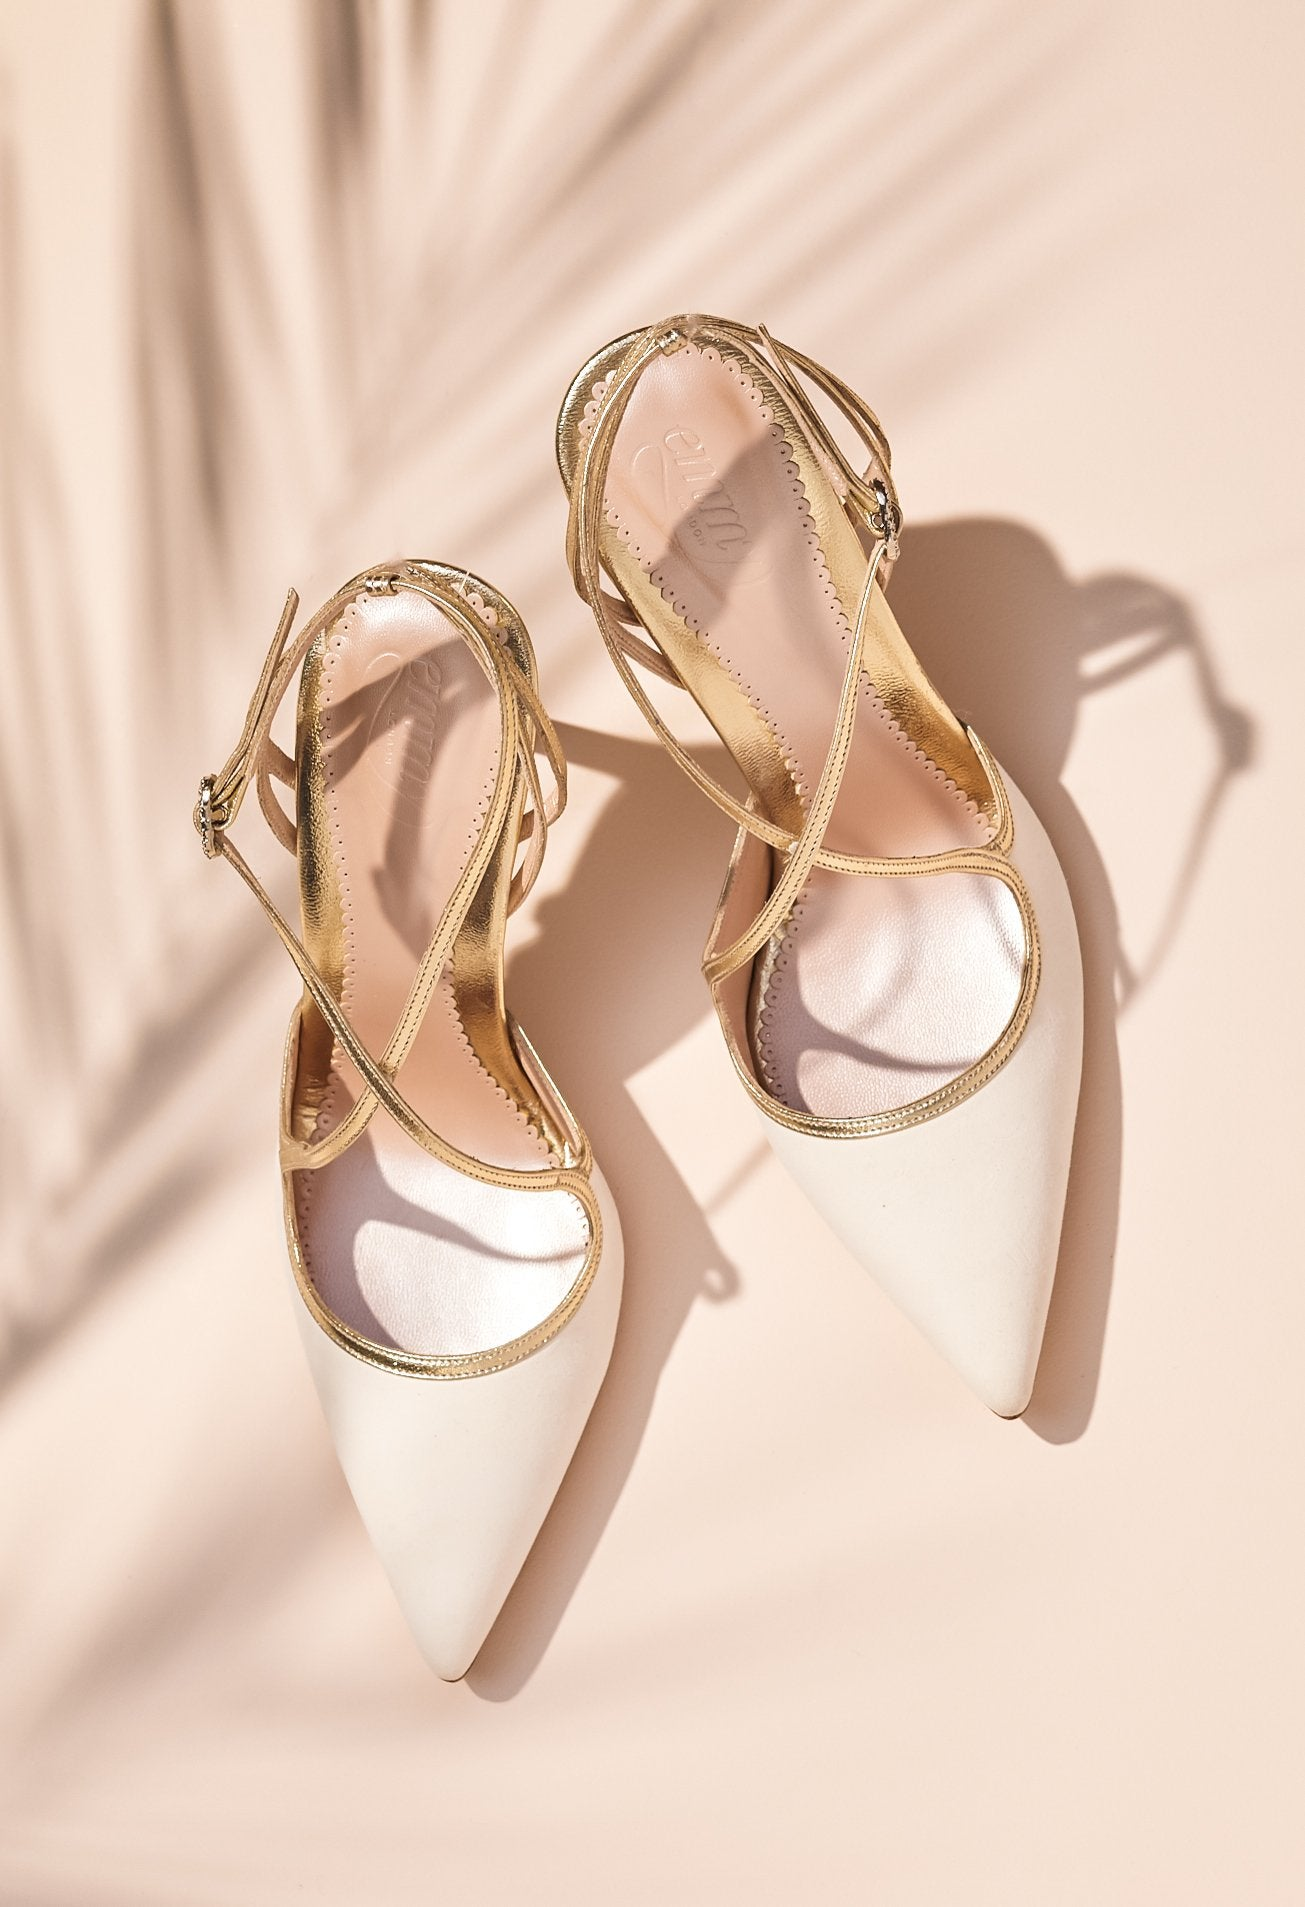 Rose emmy london rose gold wedding shoes by emmy london ivory and gold suede wedding sandals junglespirit Gallery